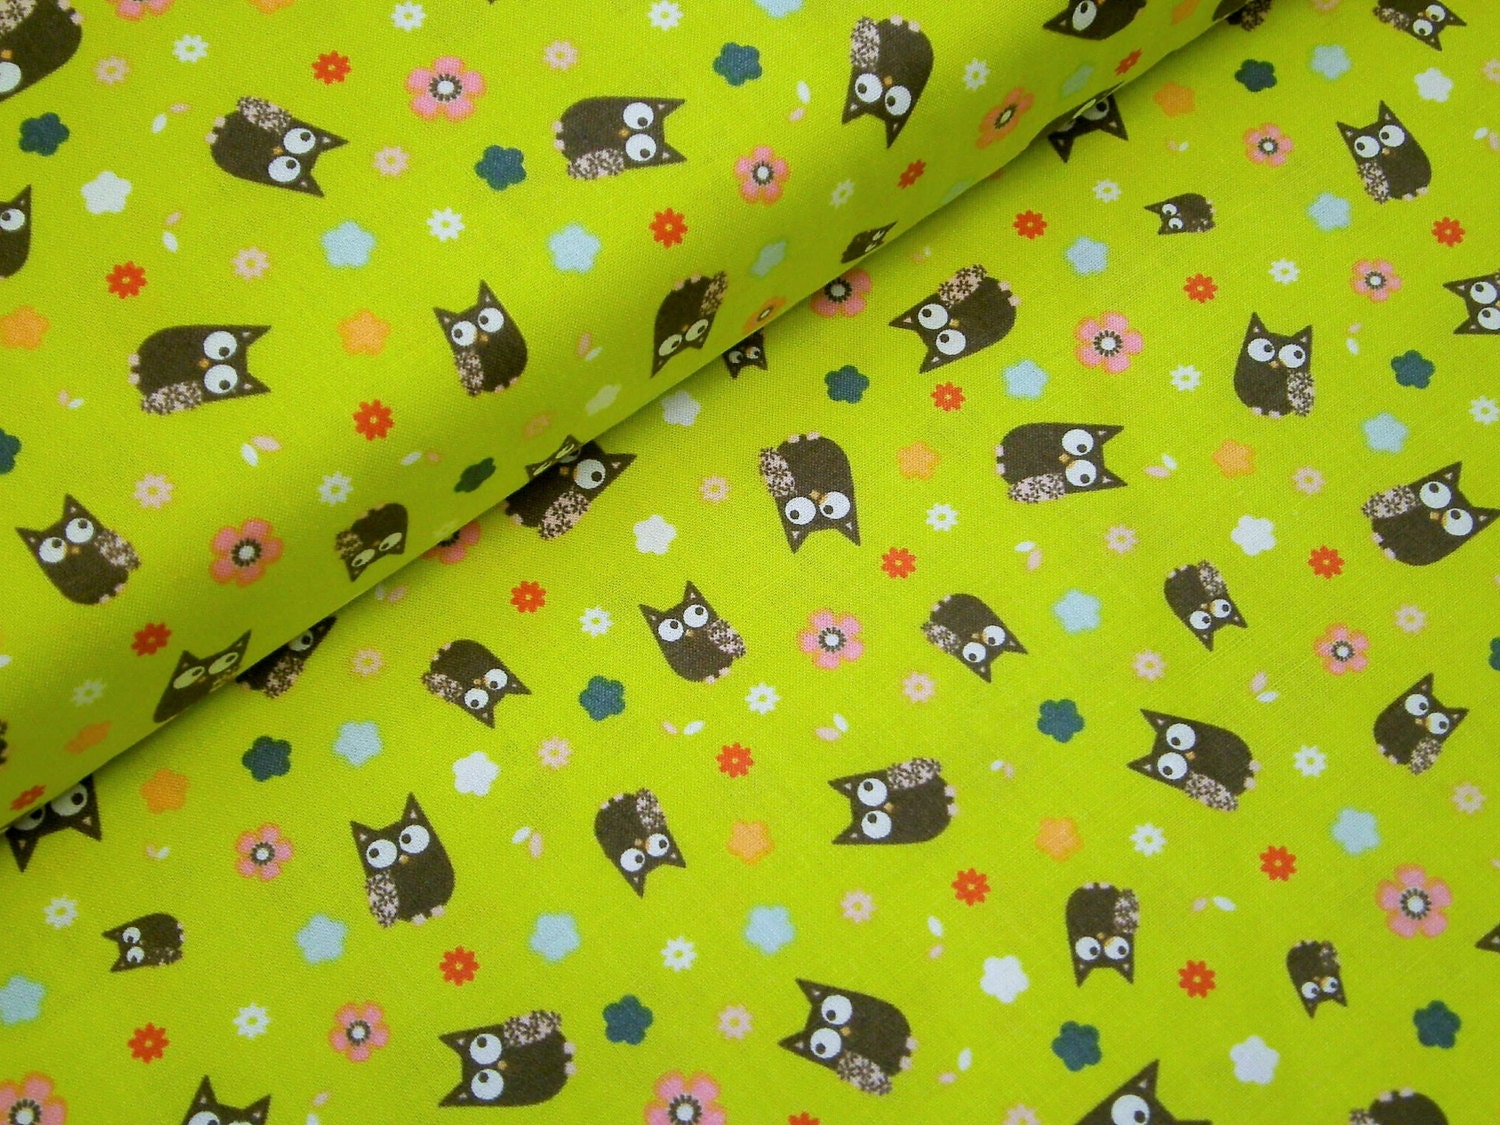 0 5 M Printed Fabric Quot Fawn Meadow Quot 114 Cm W Owl White